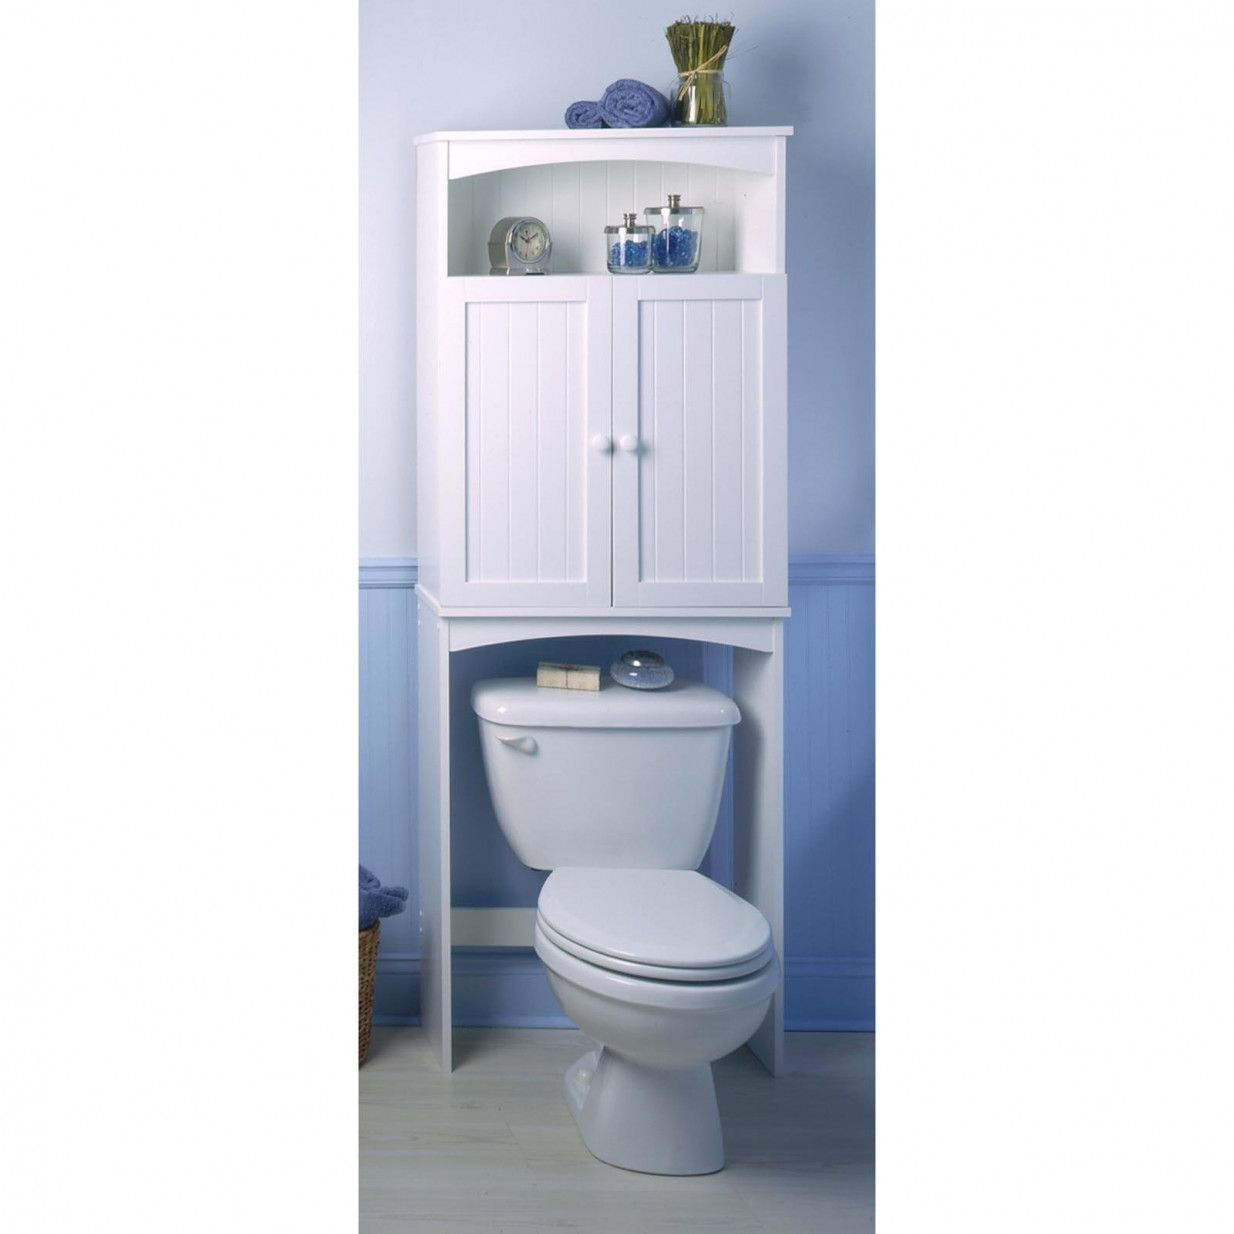 77+ Bathroom Cabinet Space Saver - Best Paint for Interior Walls ...